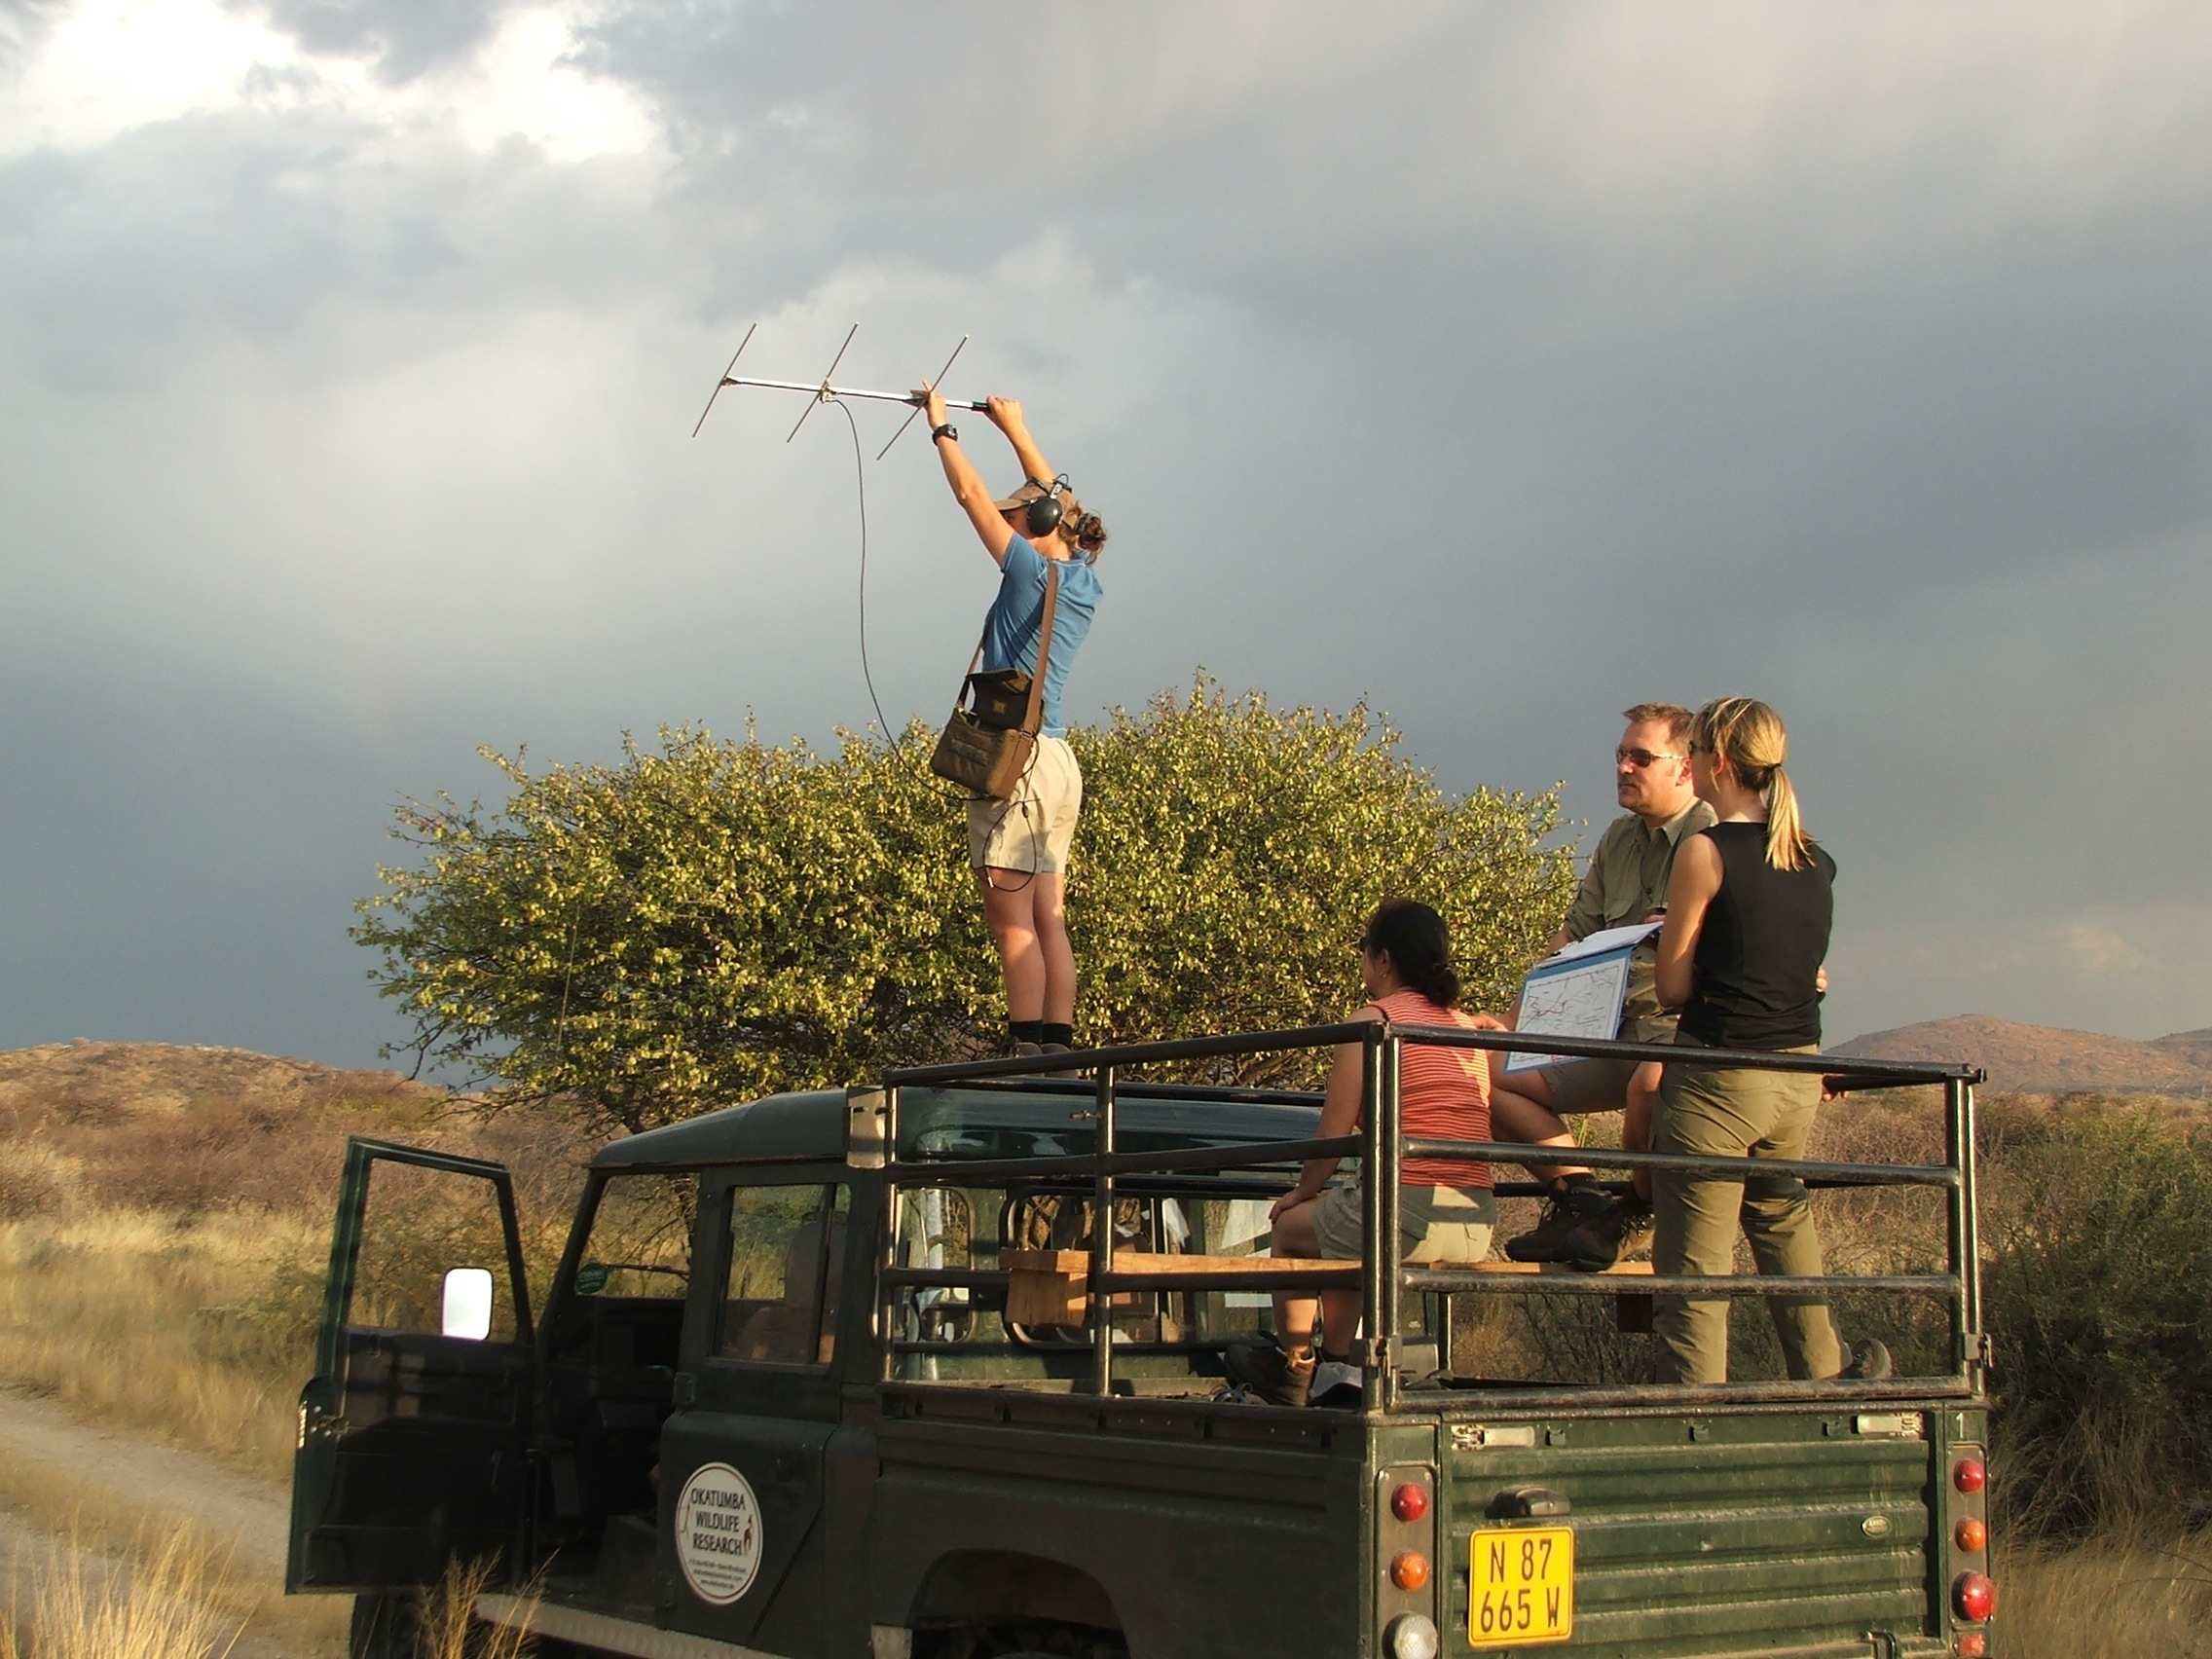 Conservancies support a variety of research projects, such as radio telemetry on large carnivores